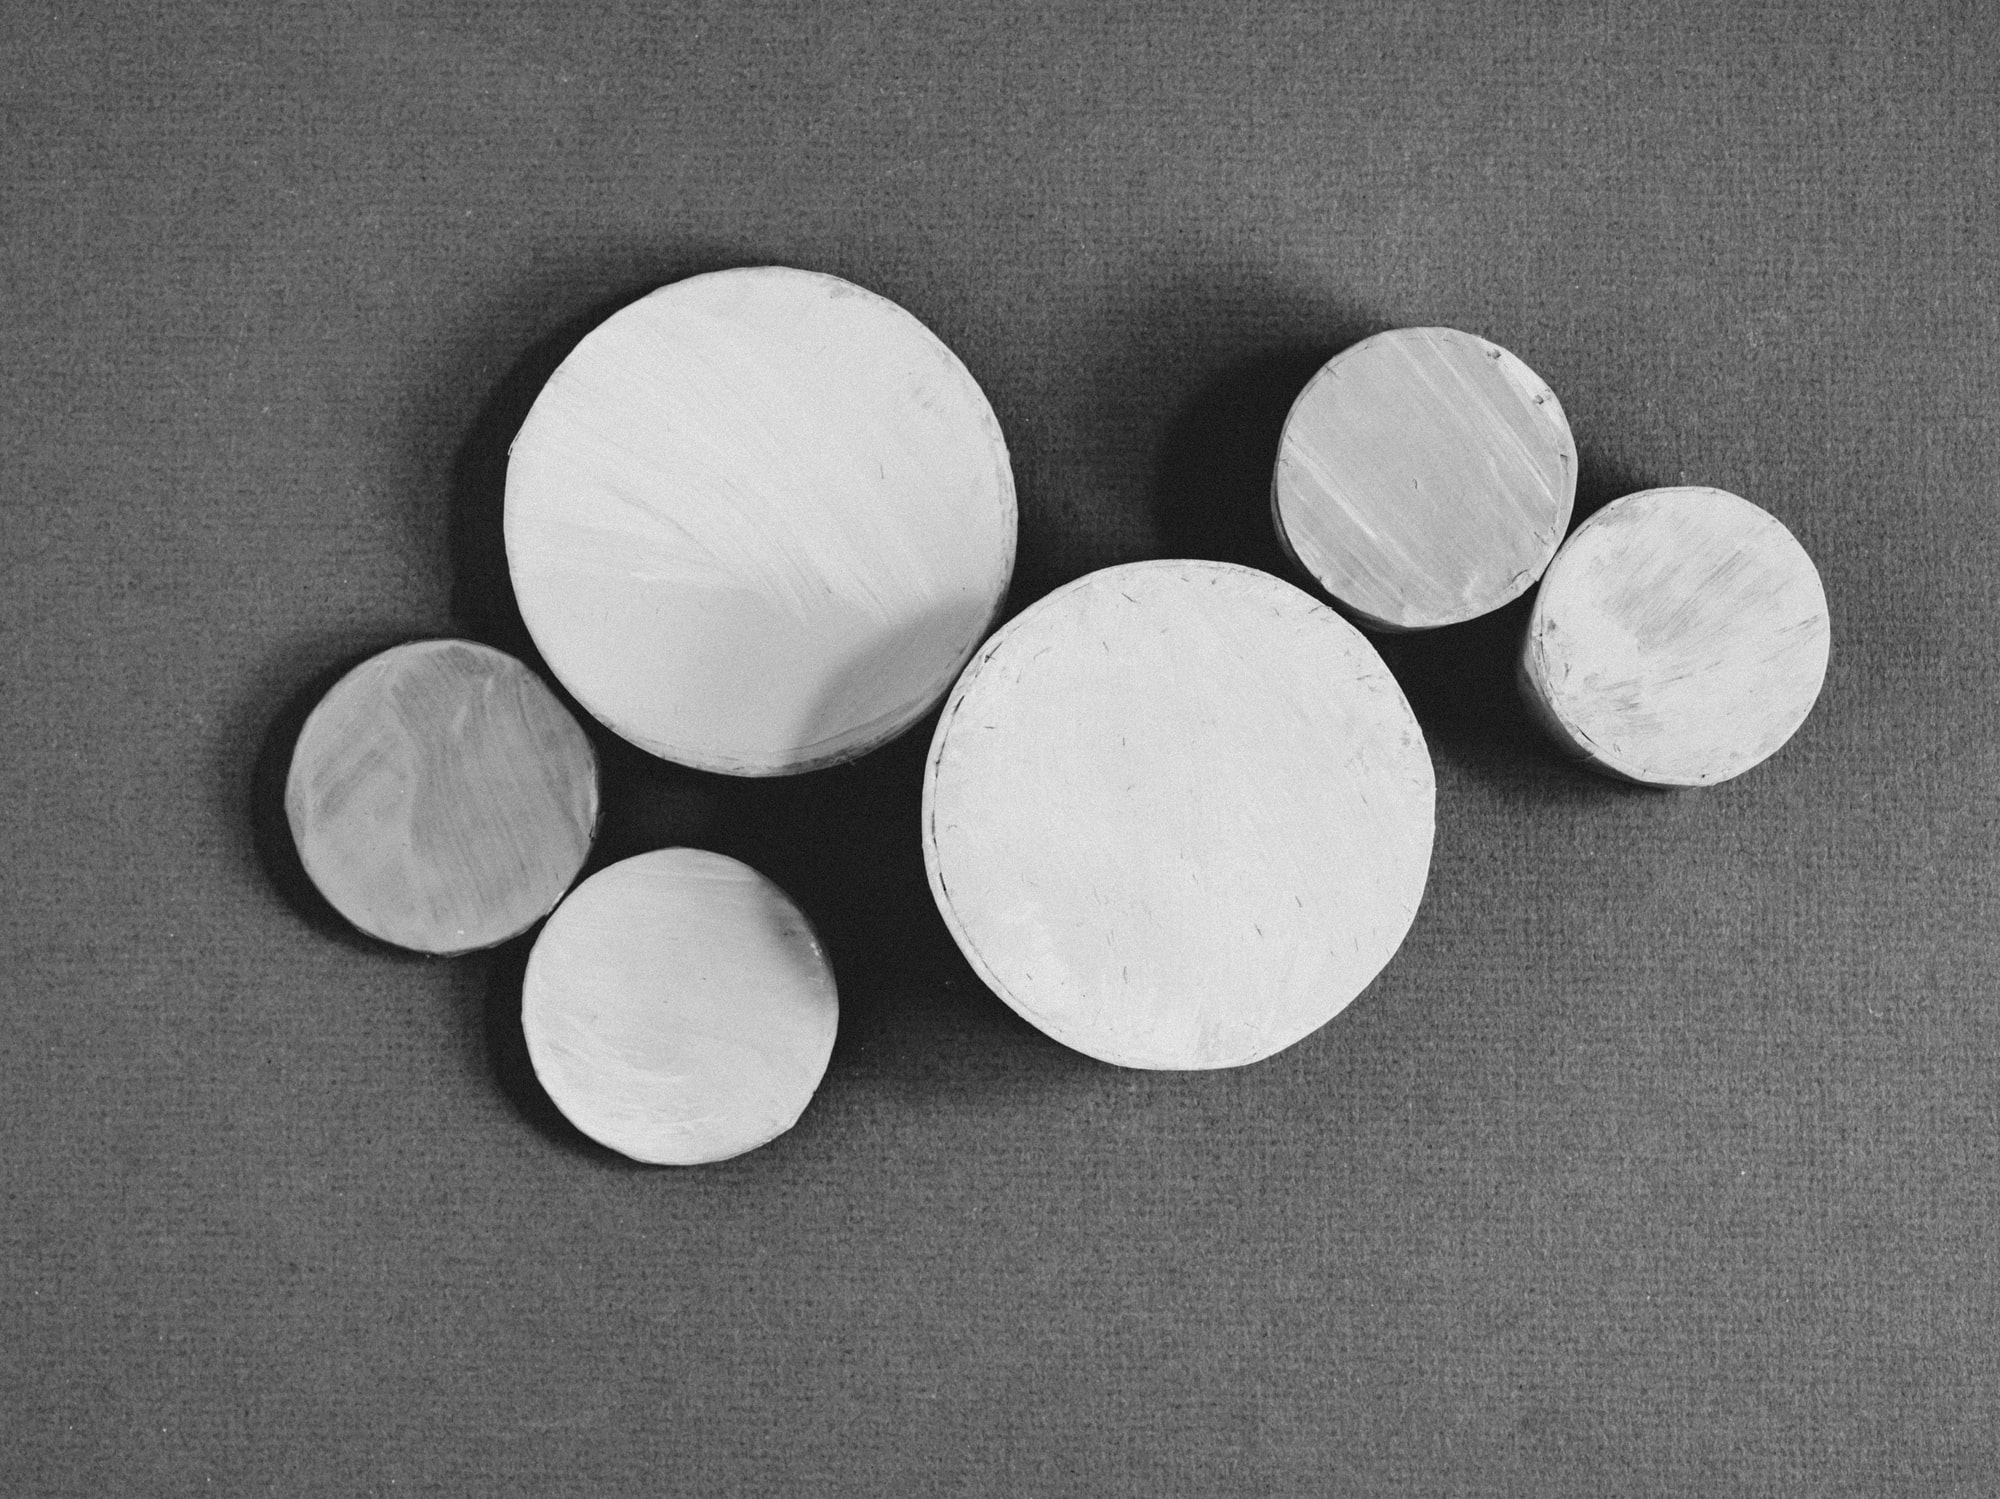 Painted round boxes on a plain paper background.